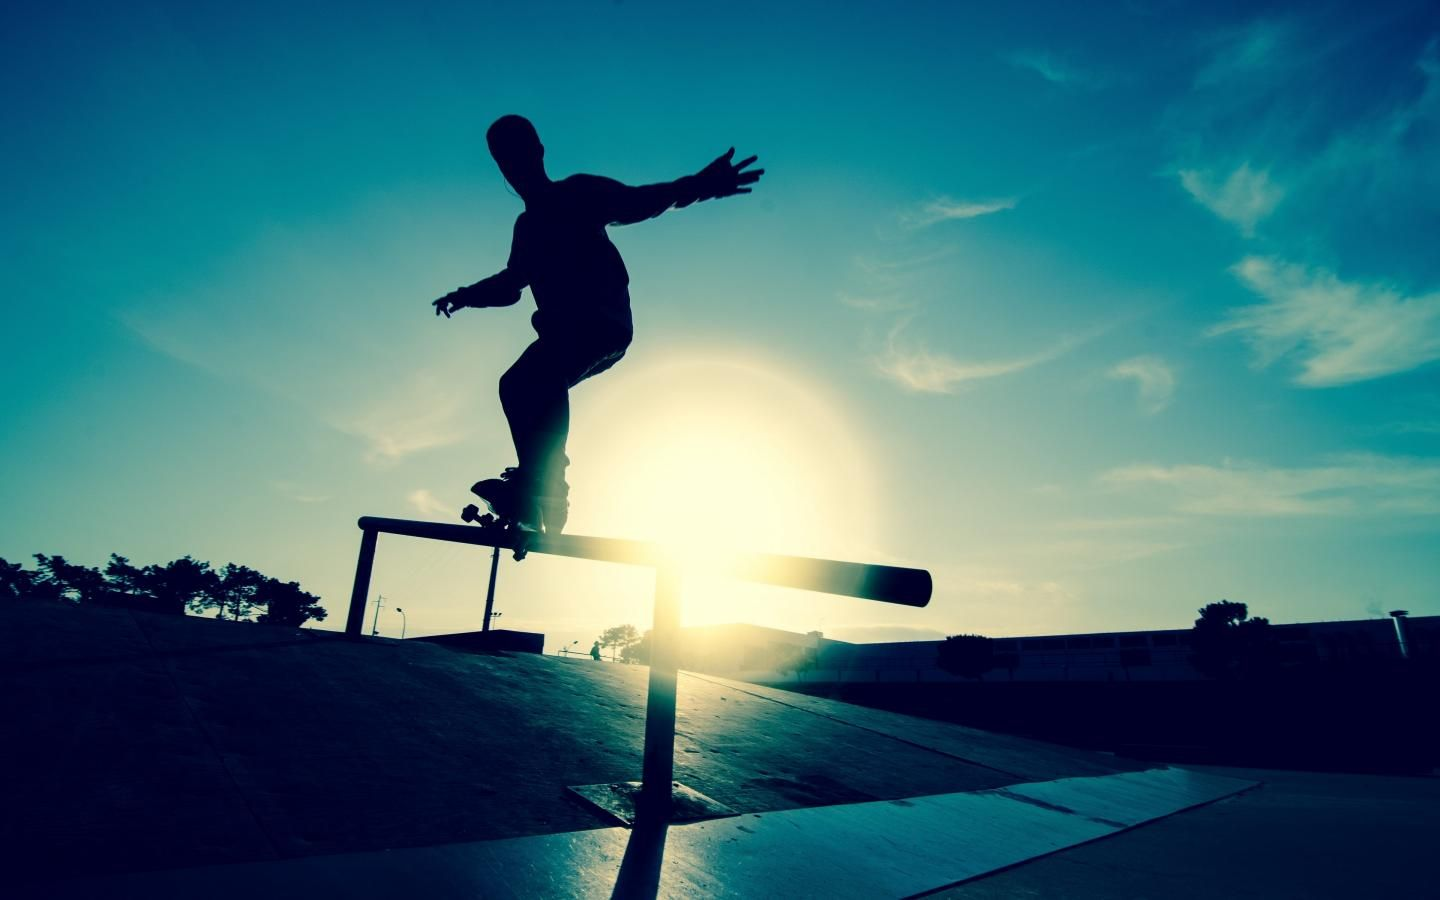 Skateboard Wallpaper High Definition « Firefox Wallpaper